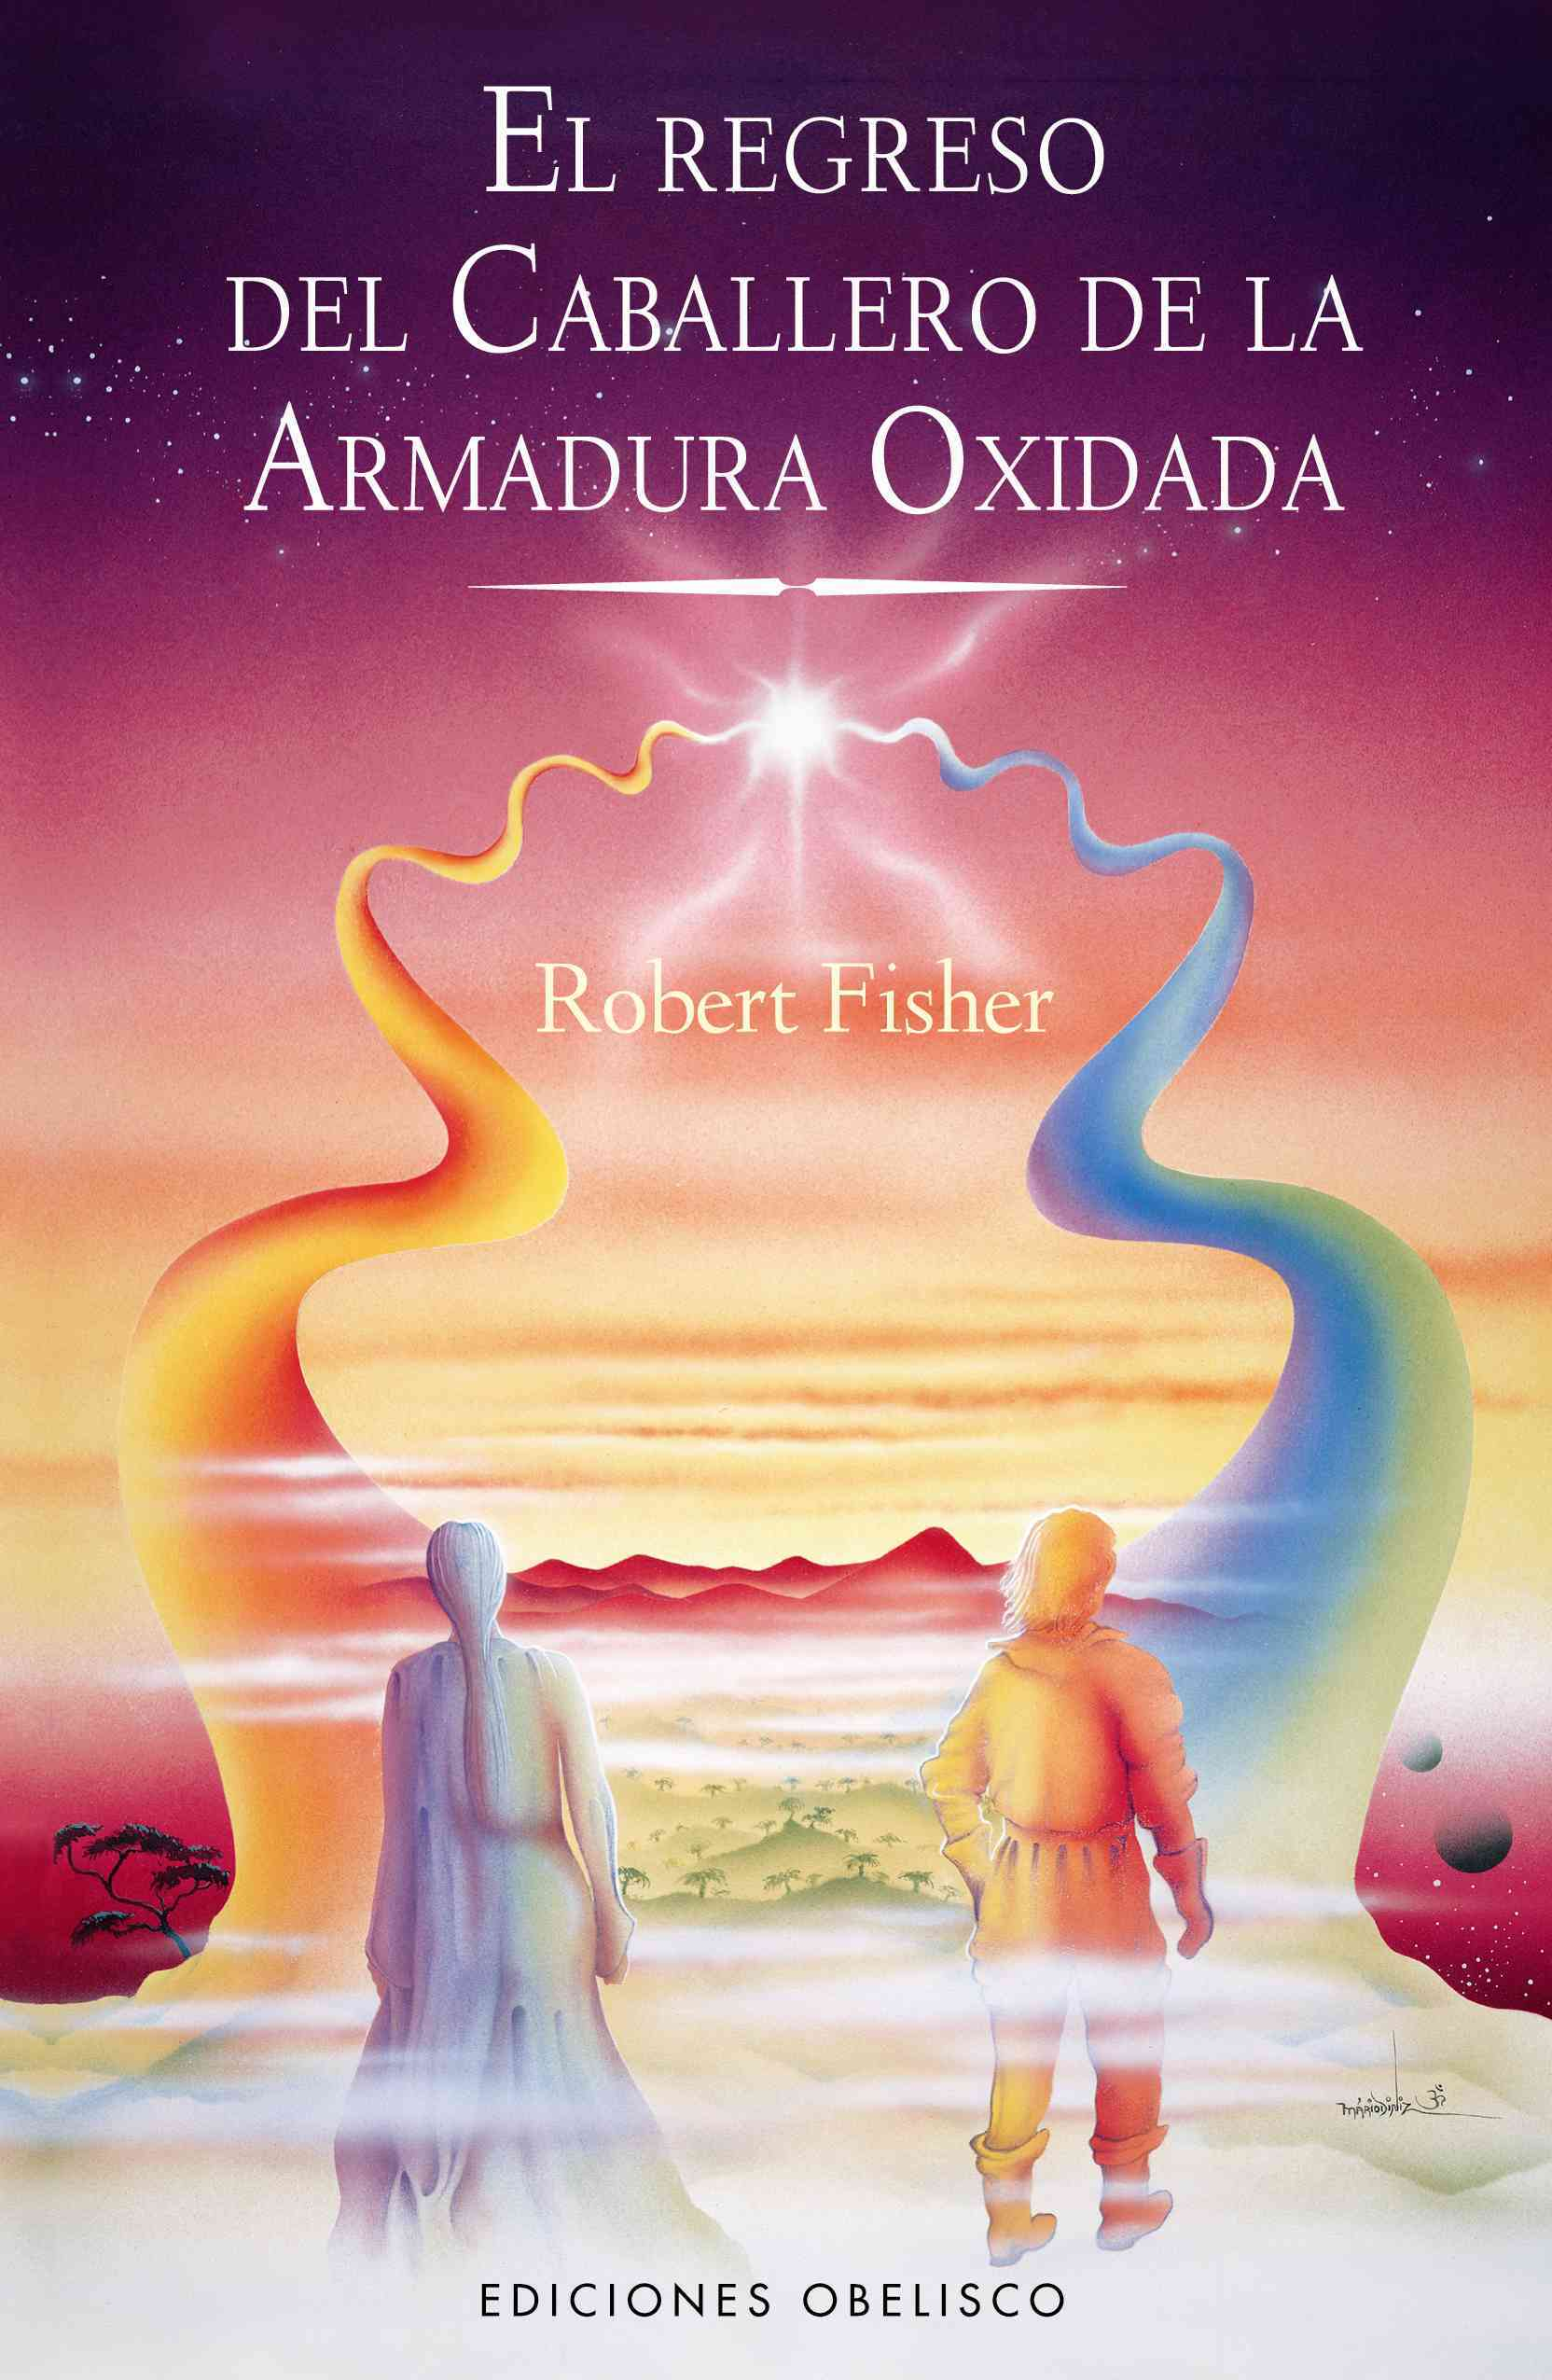 El regreso del caballero de la armadura oxidada / The Return of the Knight in Rusty Armor By Fisher, Robert